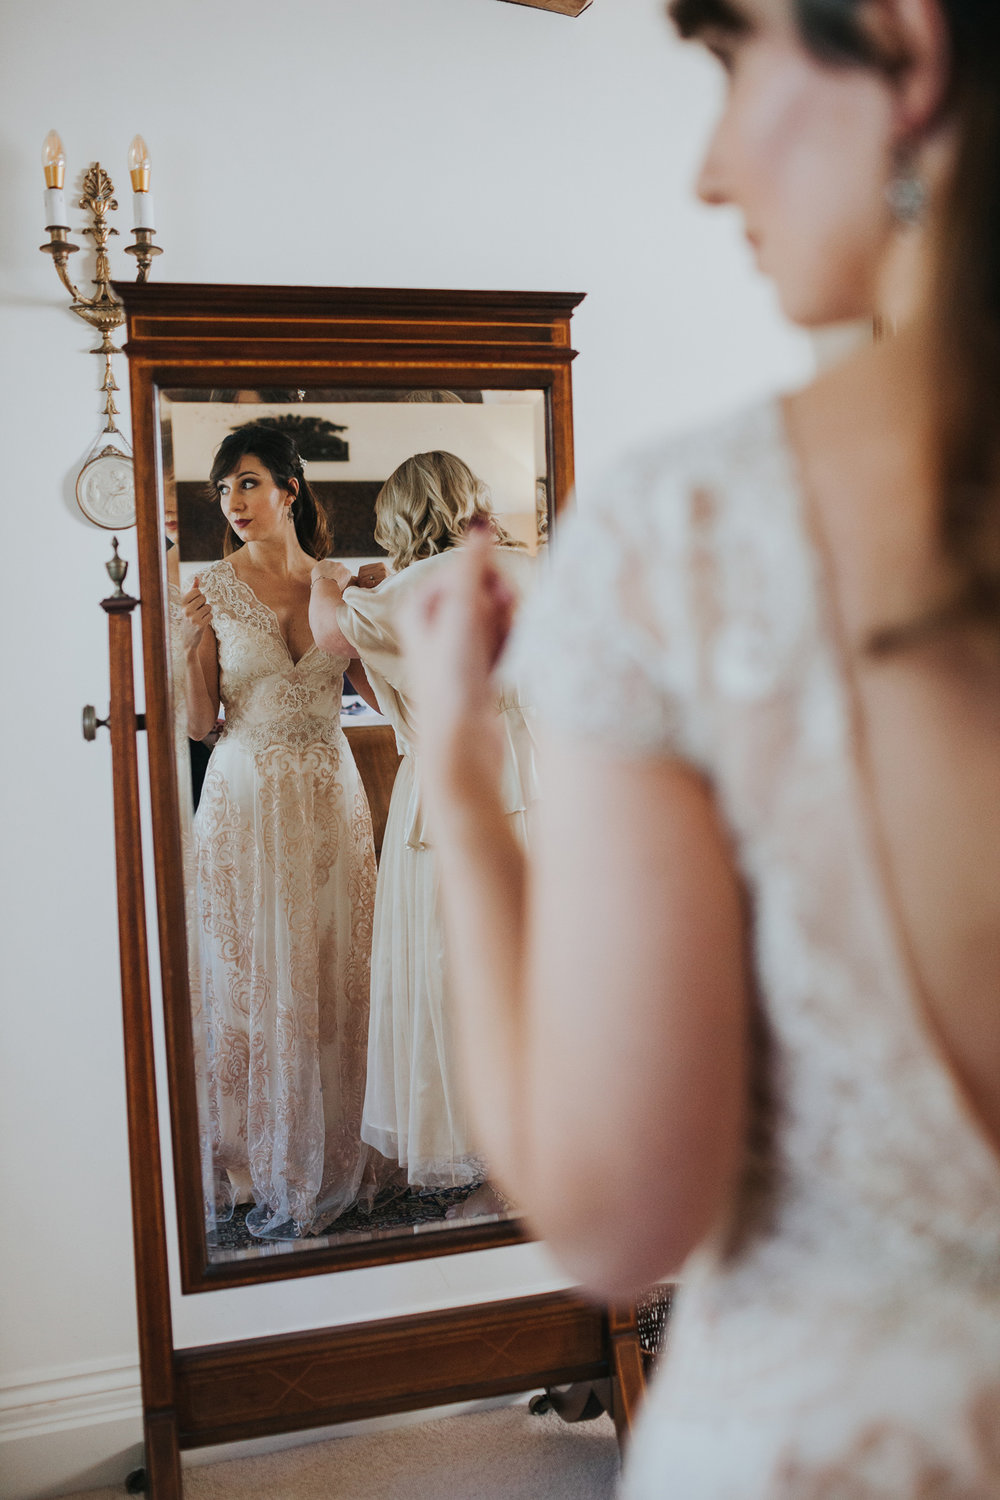 Bride standing in front of the mirror in her wedding dress.